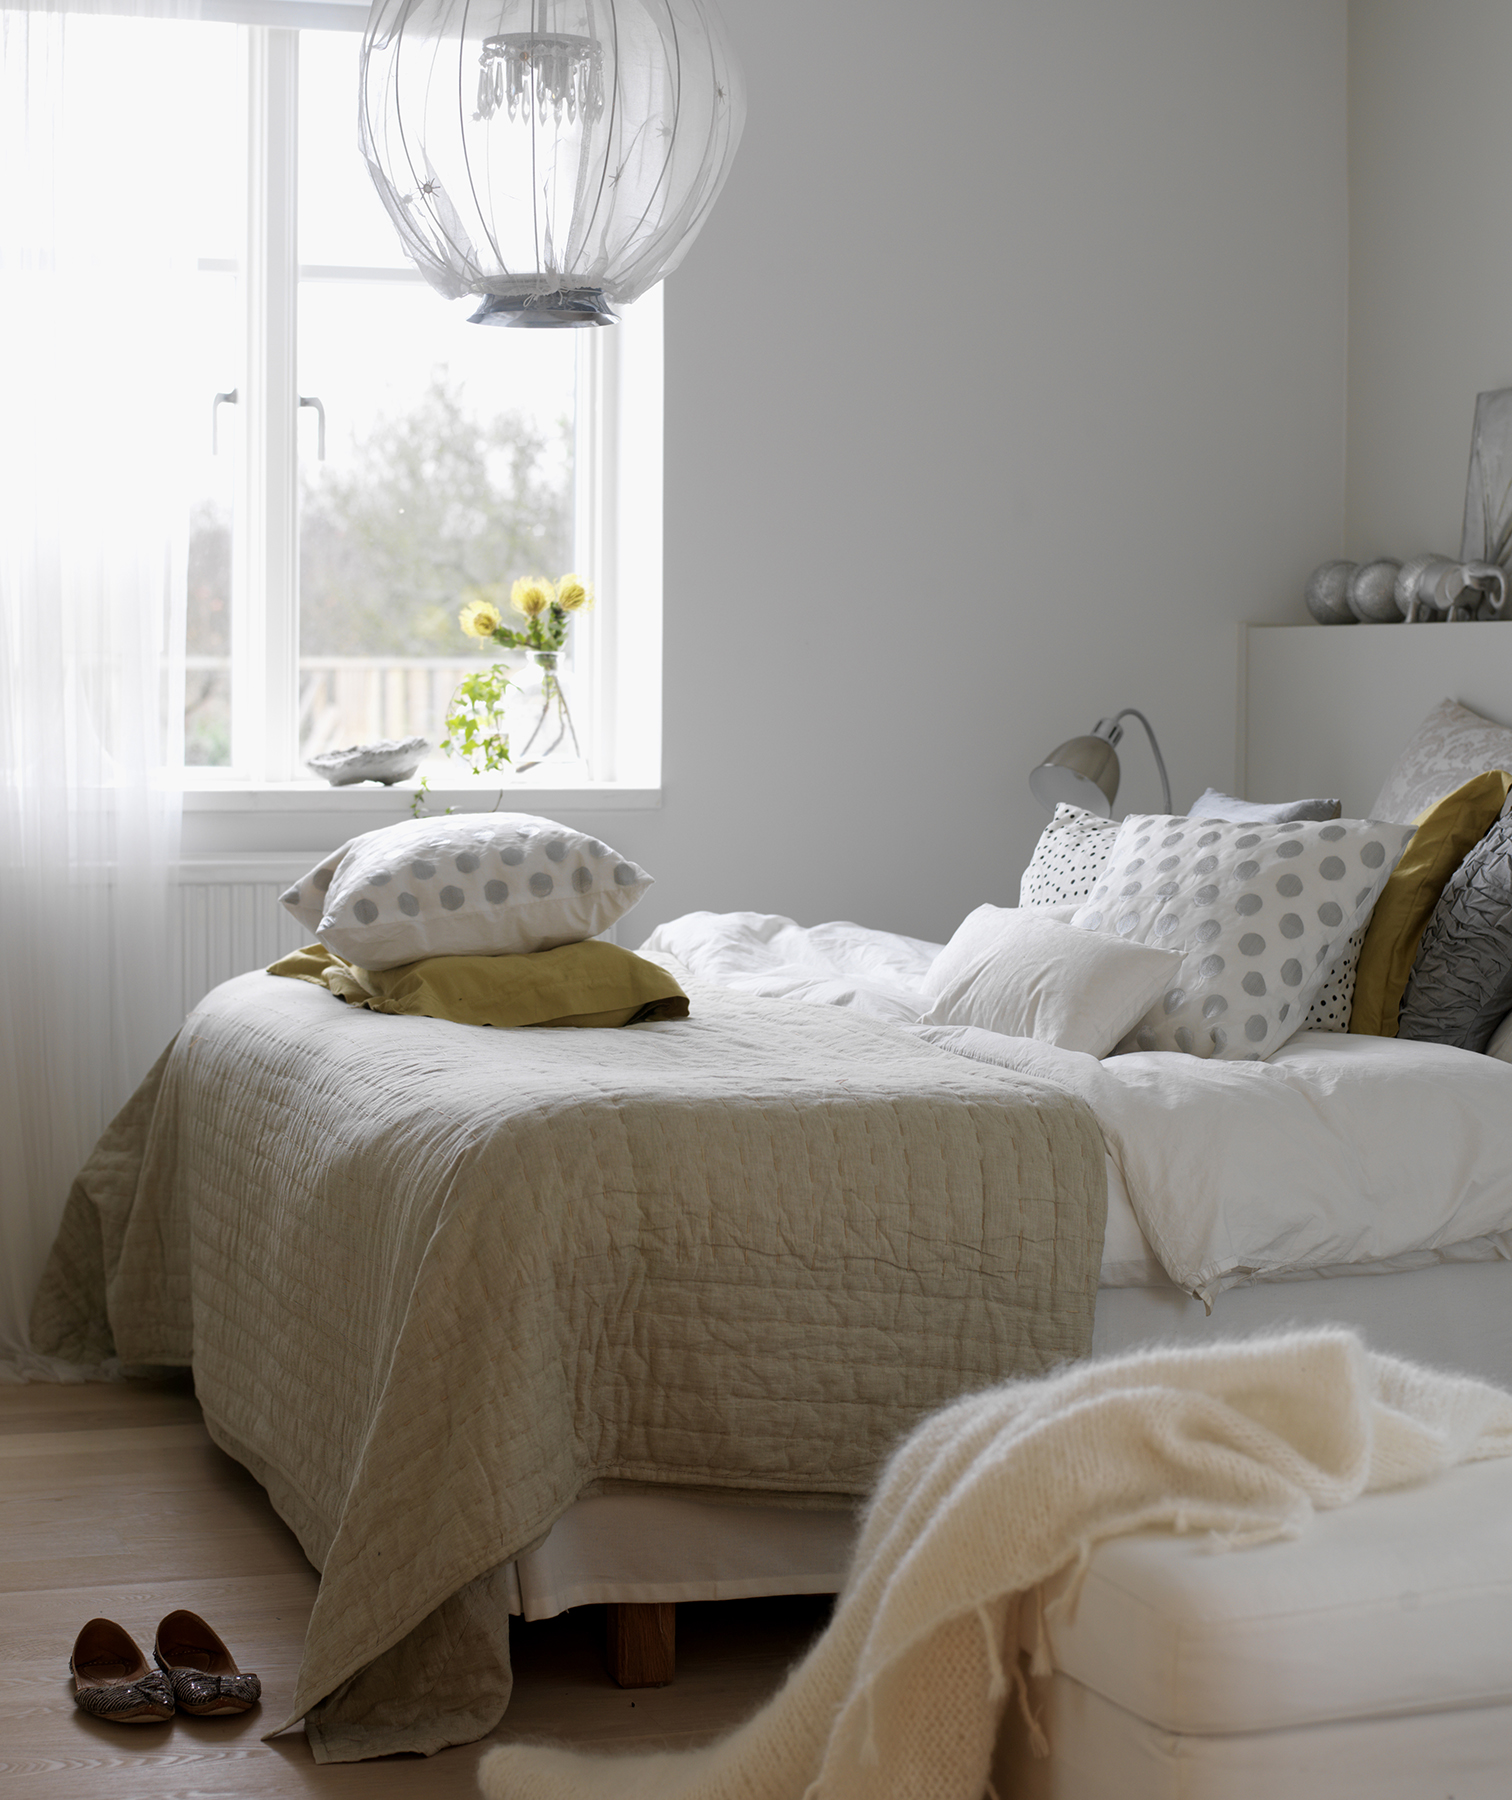 Exceptional Light Airy Bedroom With Pillows And Throws